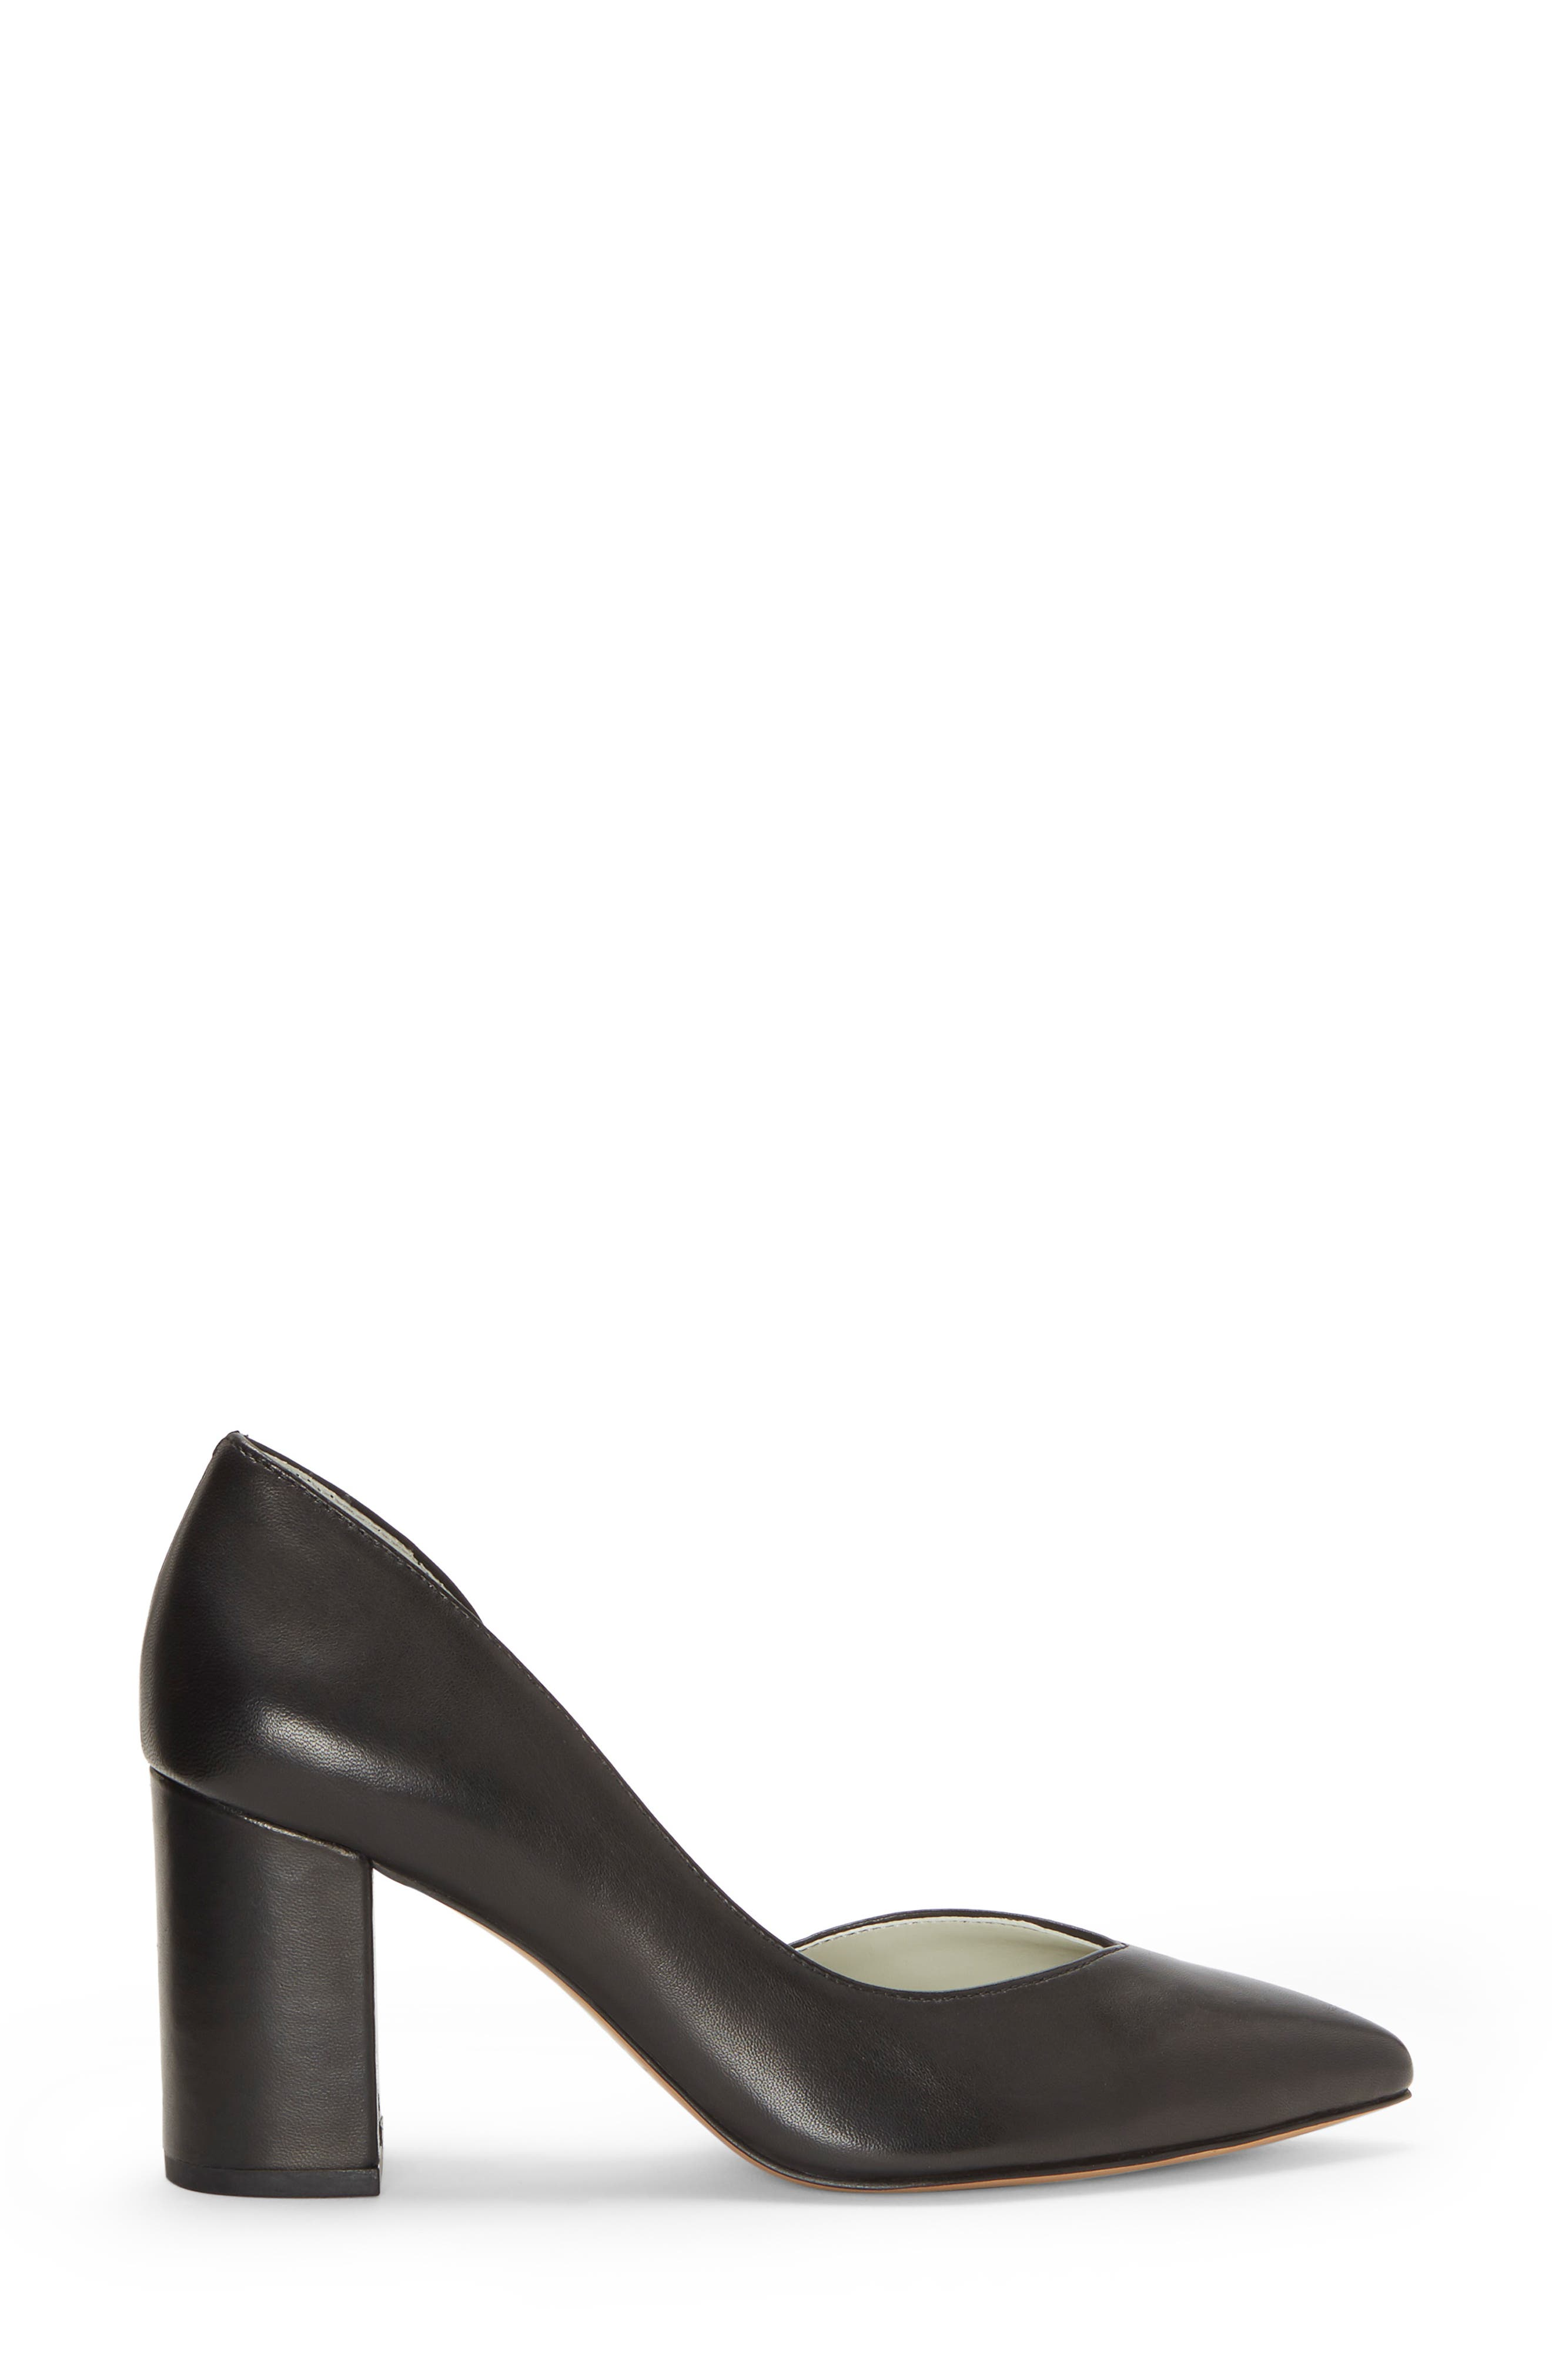 Sisteen Half d'Orsay Pump,                             Alternate thumbnail 3, color,                             BLACK LEATHER